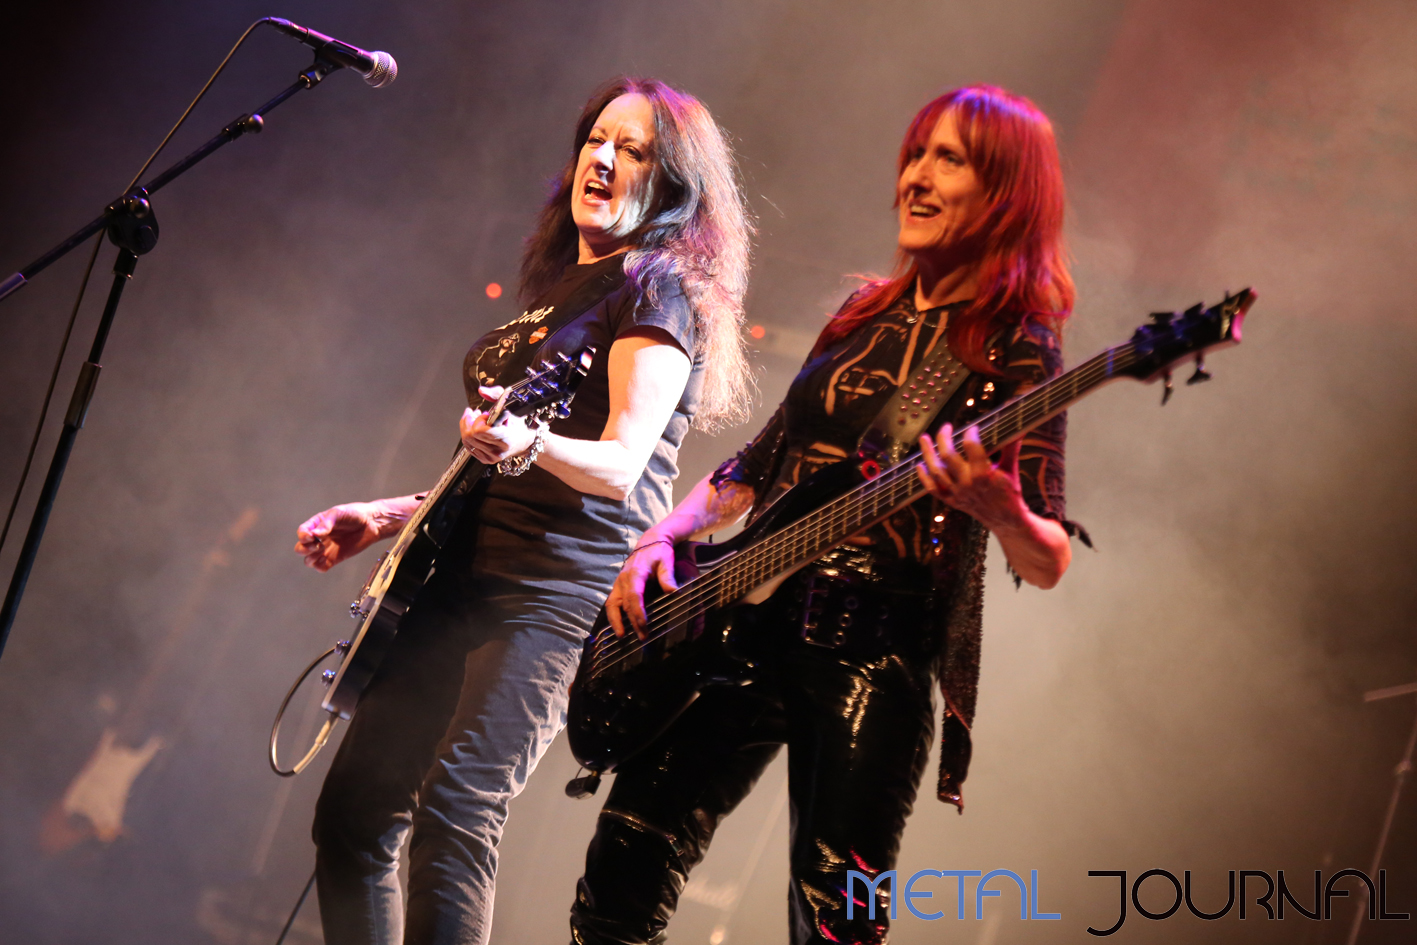 girlschool - metal journal 2018 pic 5